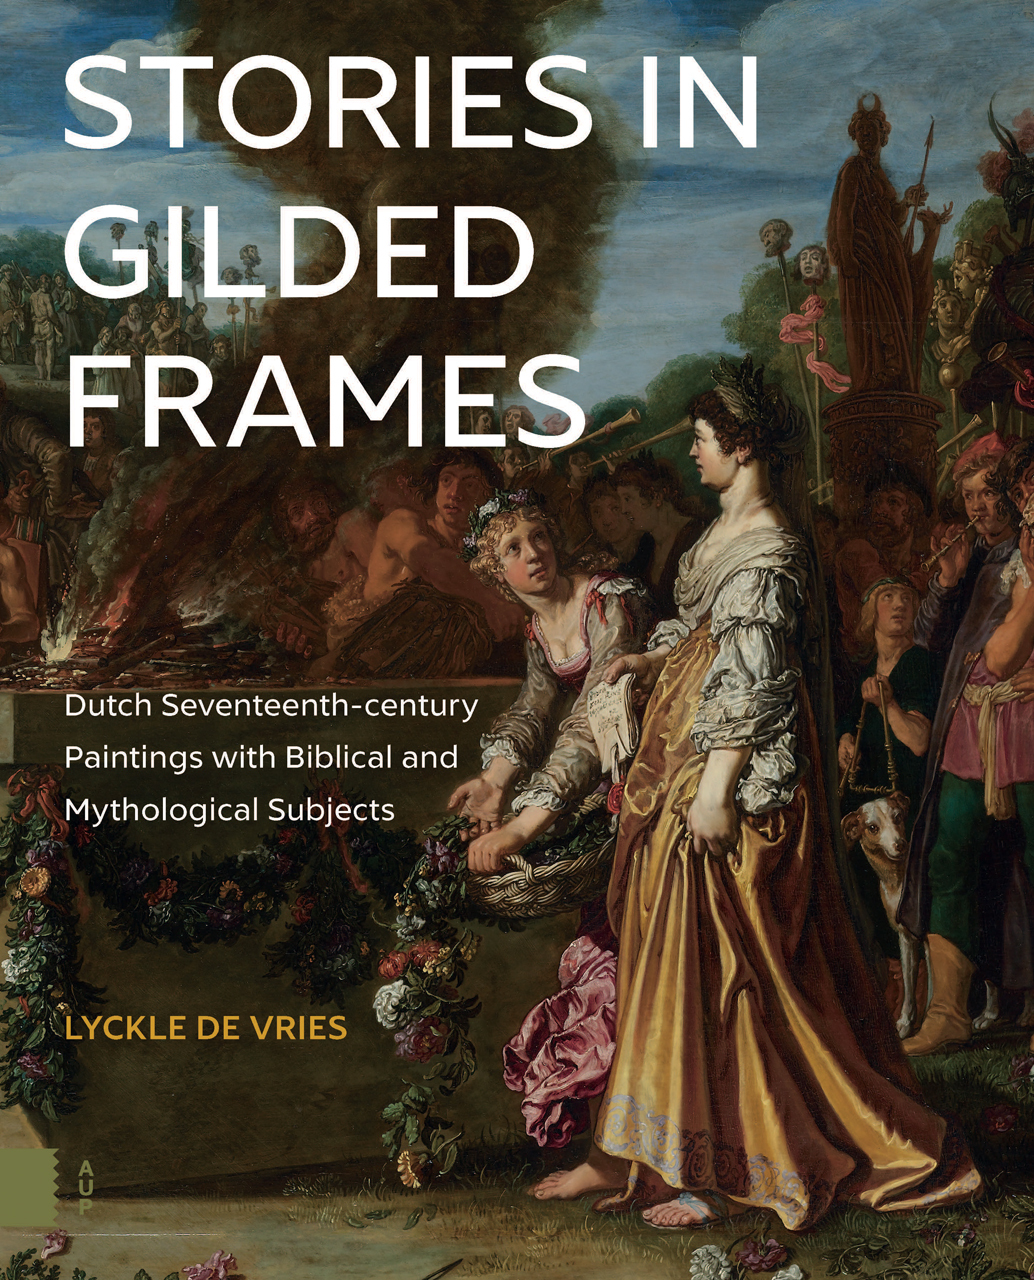 Stories in Gilded Frames: Dutch Seventeenth-century Paintings with Biblical and Mythological Subjects